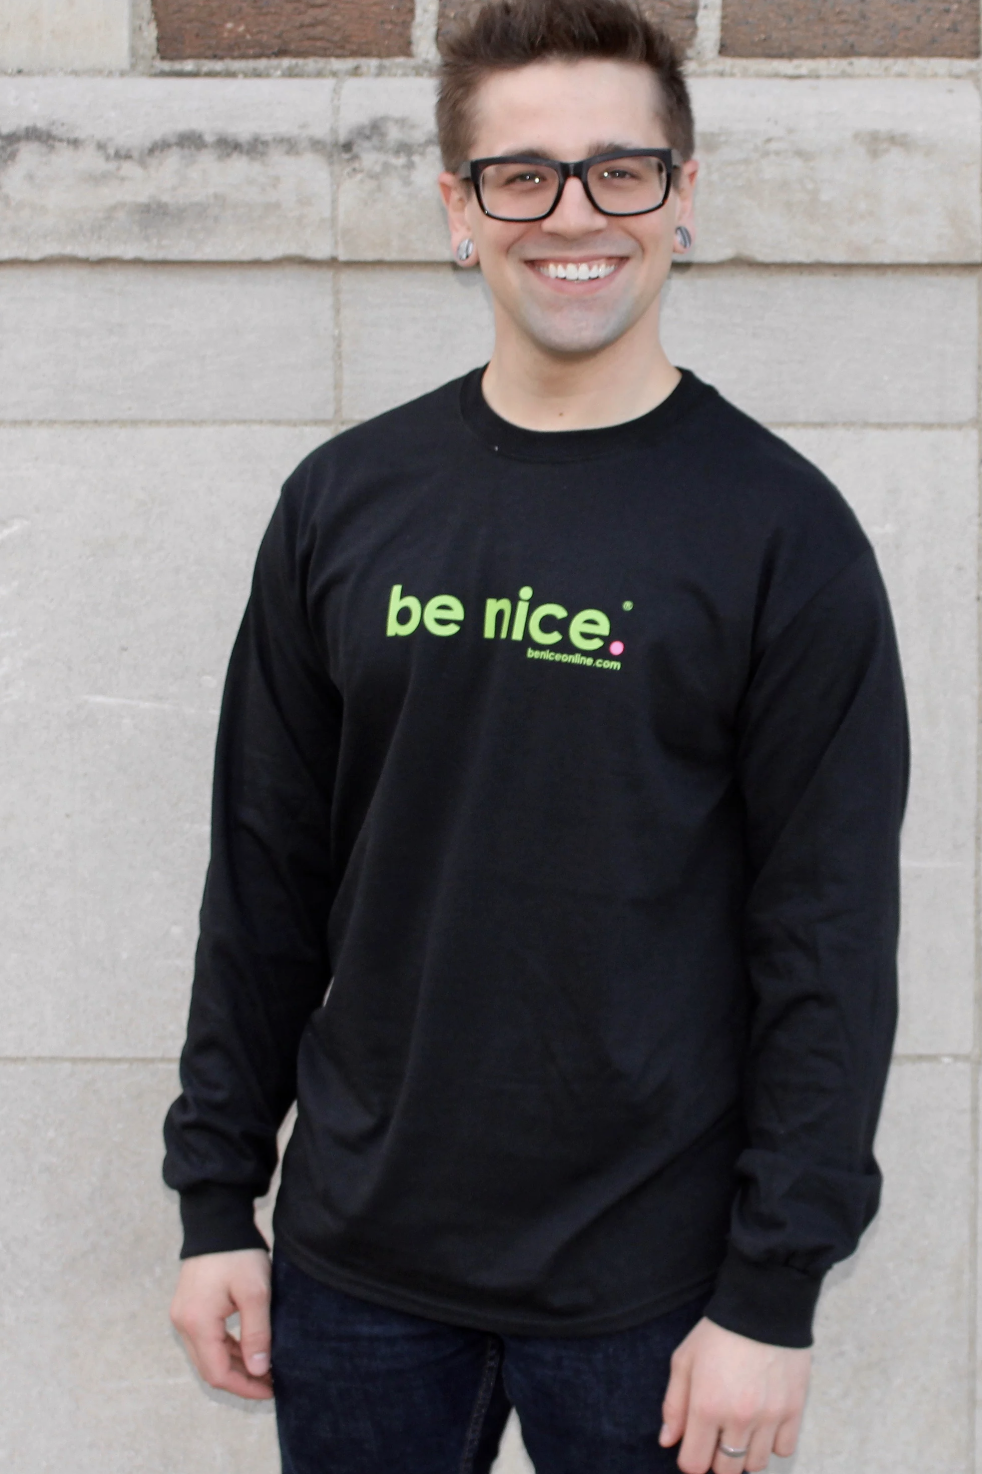 Be nice Zip Up Hooded Sweatshirt